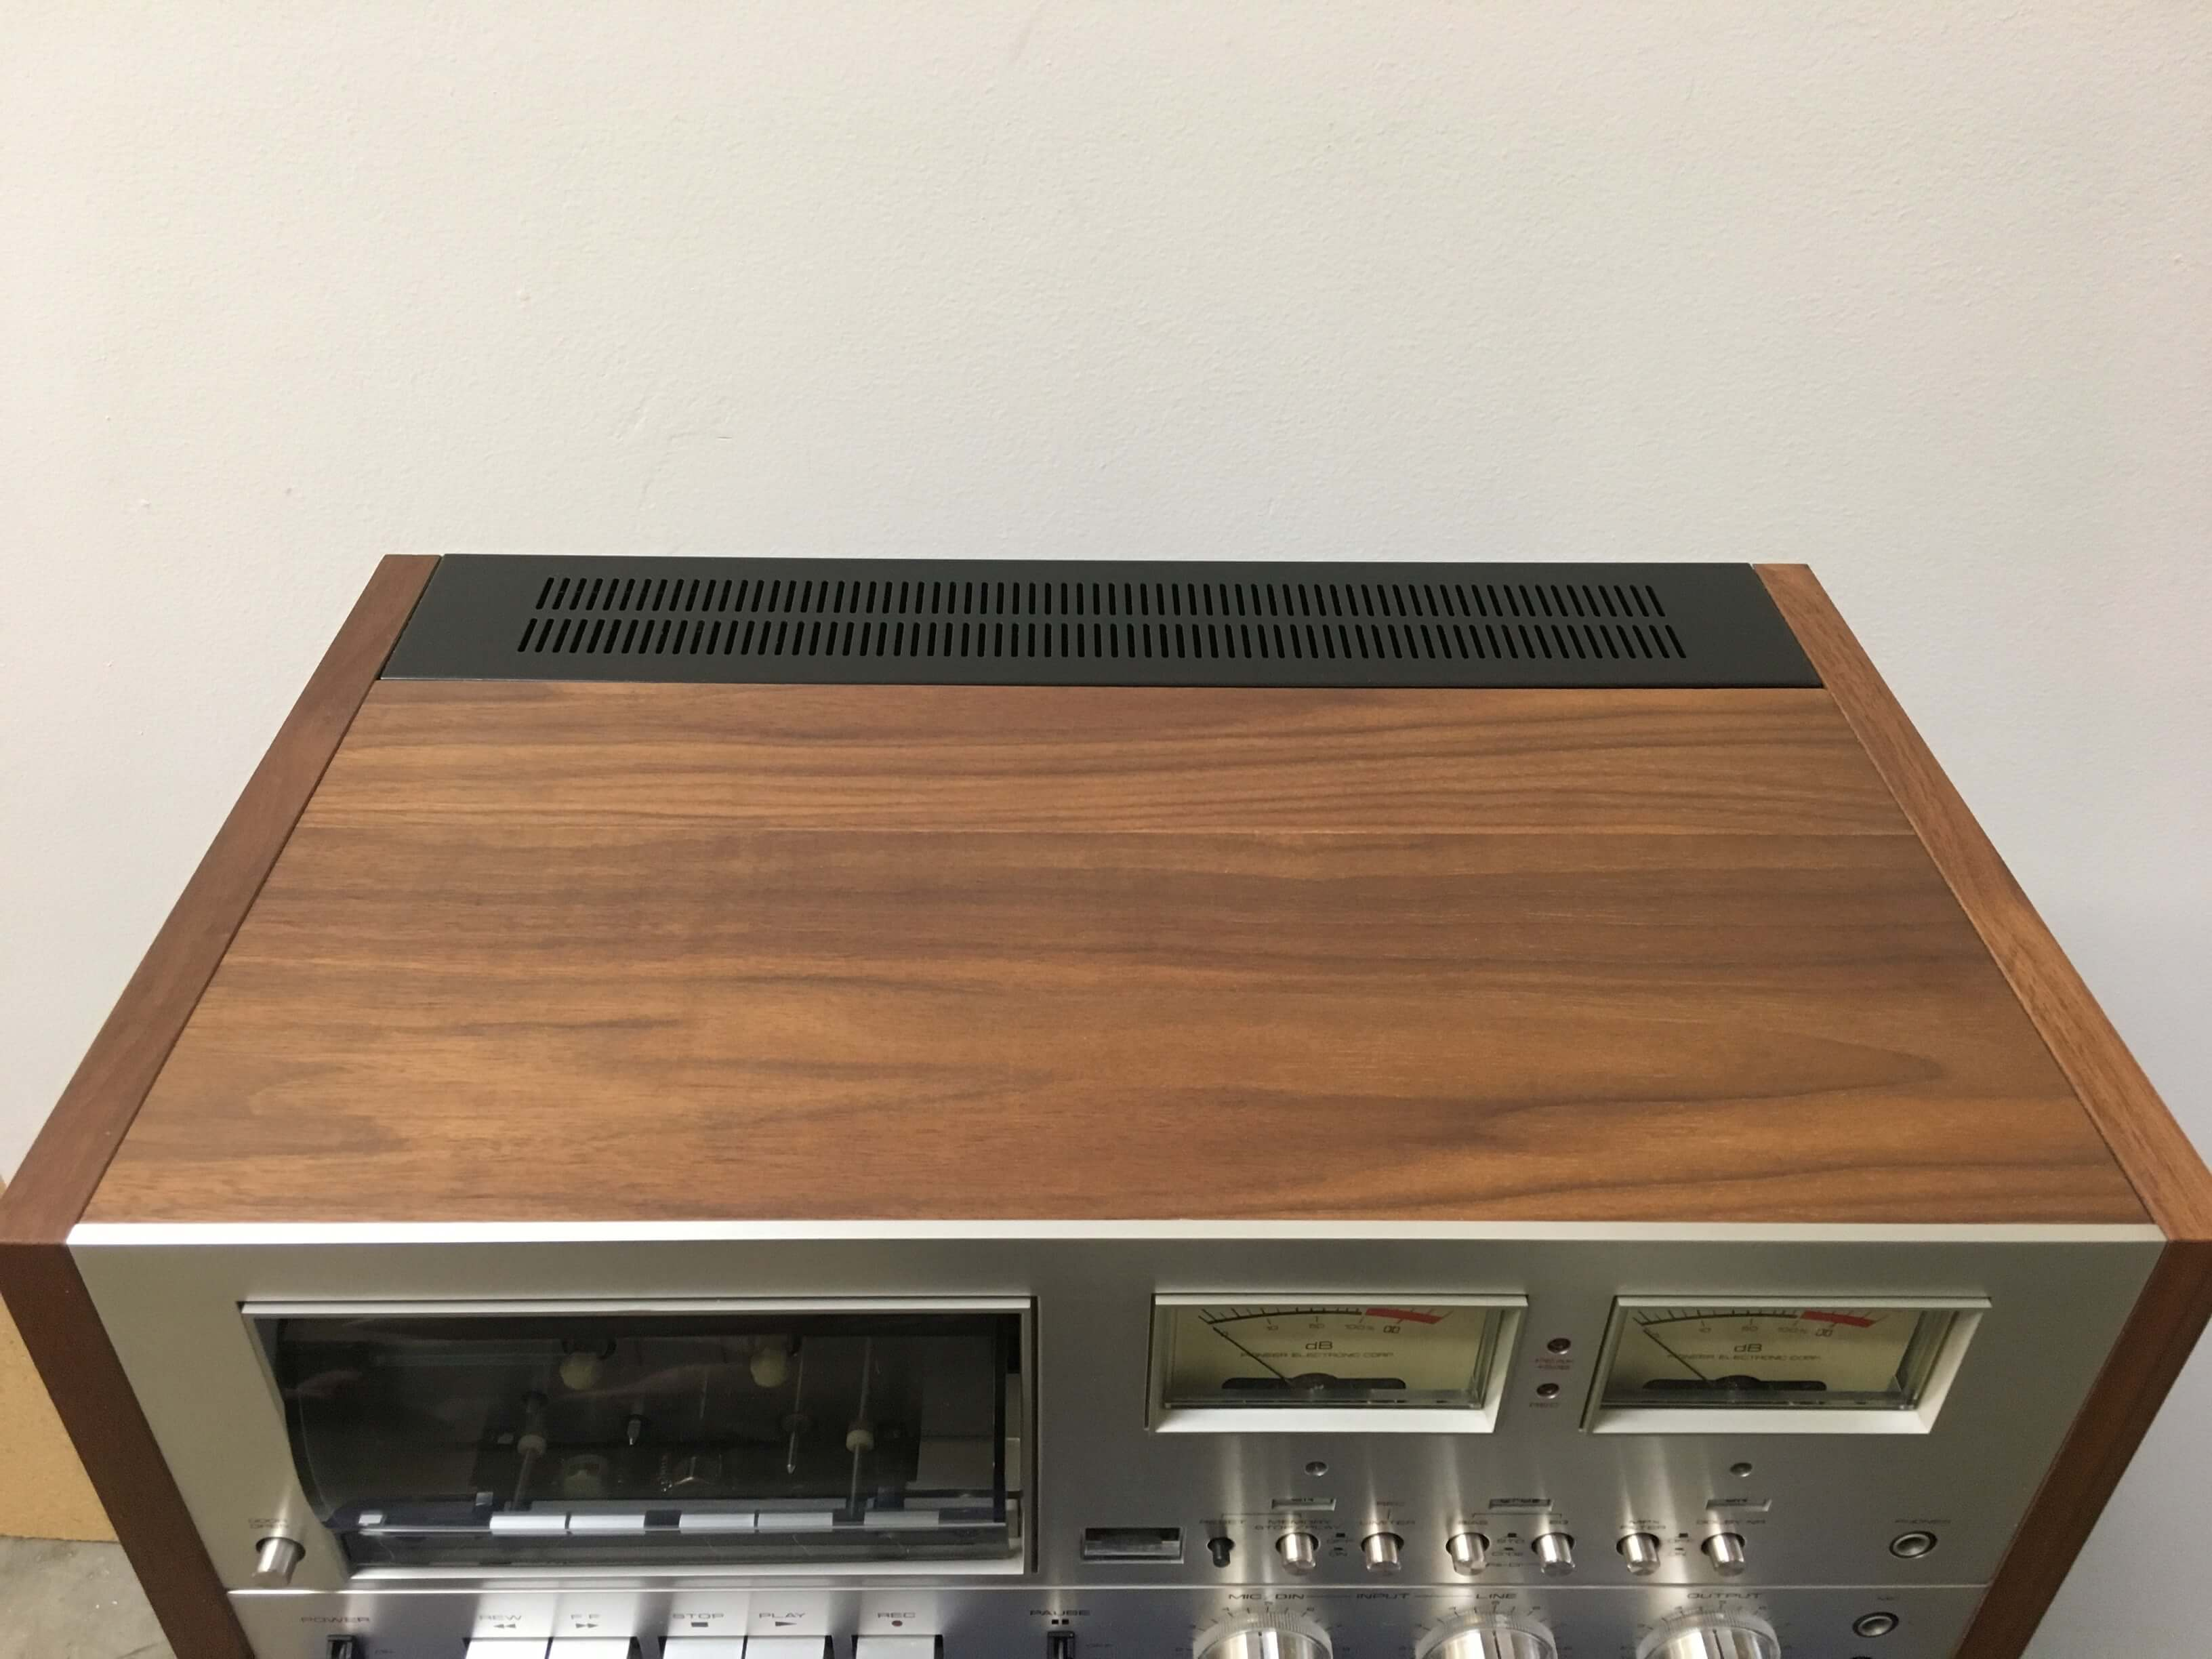 Pioneer SX-1050 receiver and CT-F9191 cassette deck set